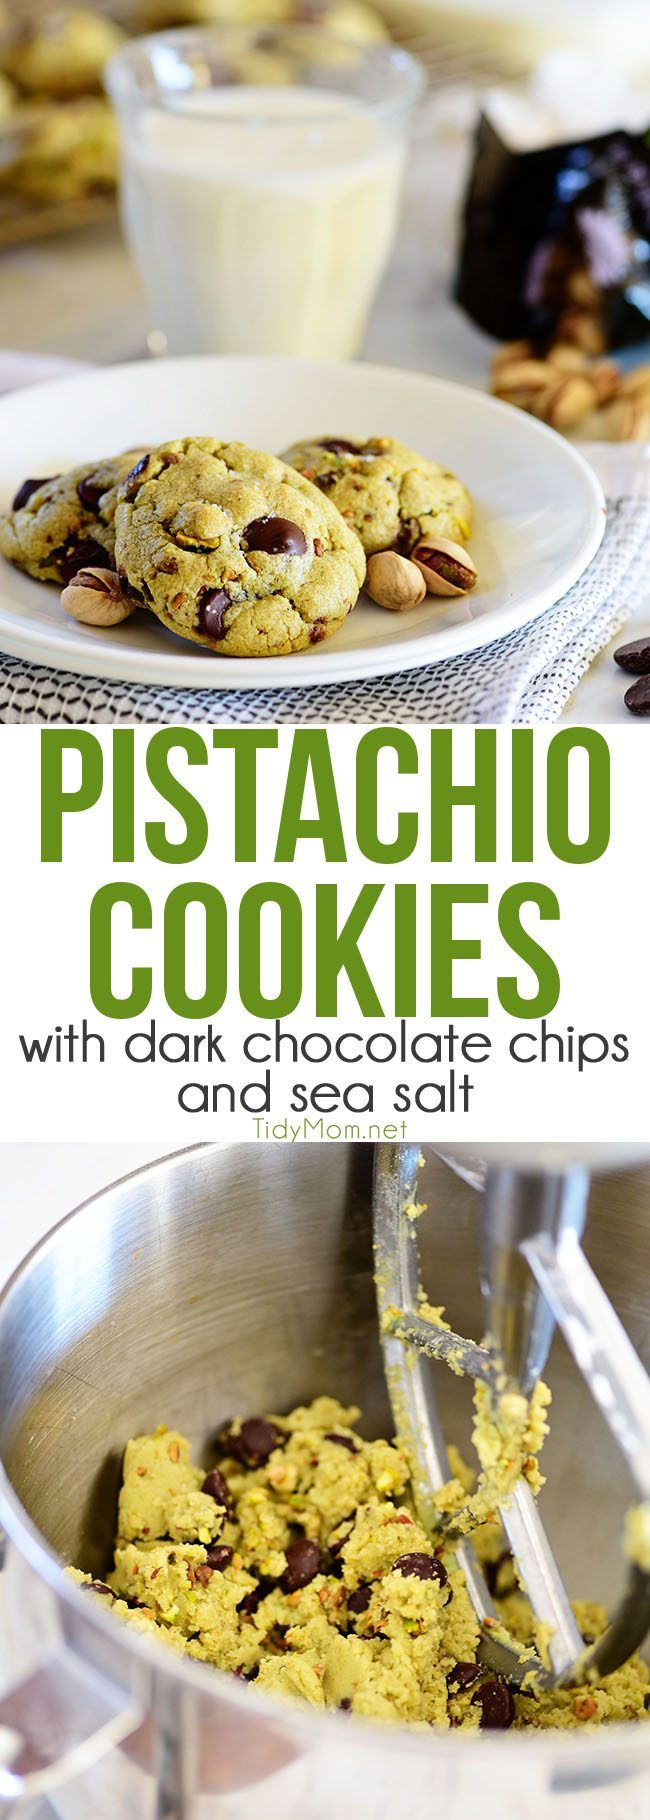 Pistachio cookies are sure to become a favorite! Perfect for St. Patricks Day, Easter, Christmas or any day. These deliciously soft pudding cookies are buttery and salty with dark chocolate chips that pair perfectly with pistachios. I bet you can't eat just one! Get the full printable recipe at TidyMom.net